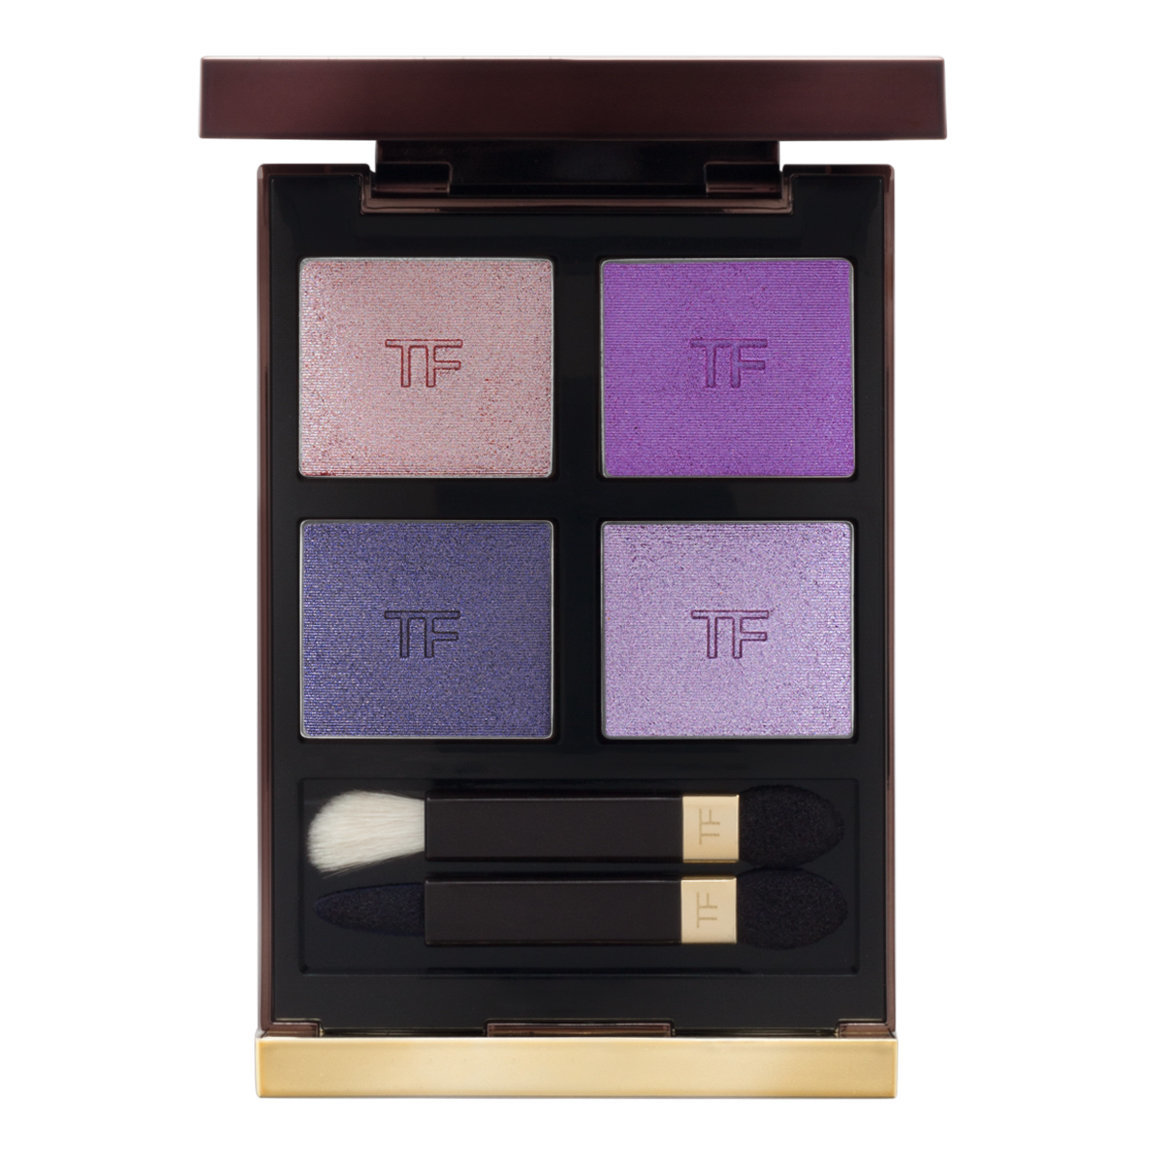 TOM FORD Eye Color Quad Daydream product swatch.